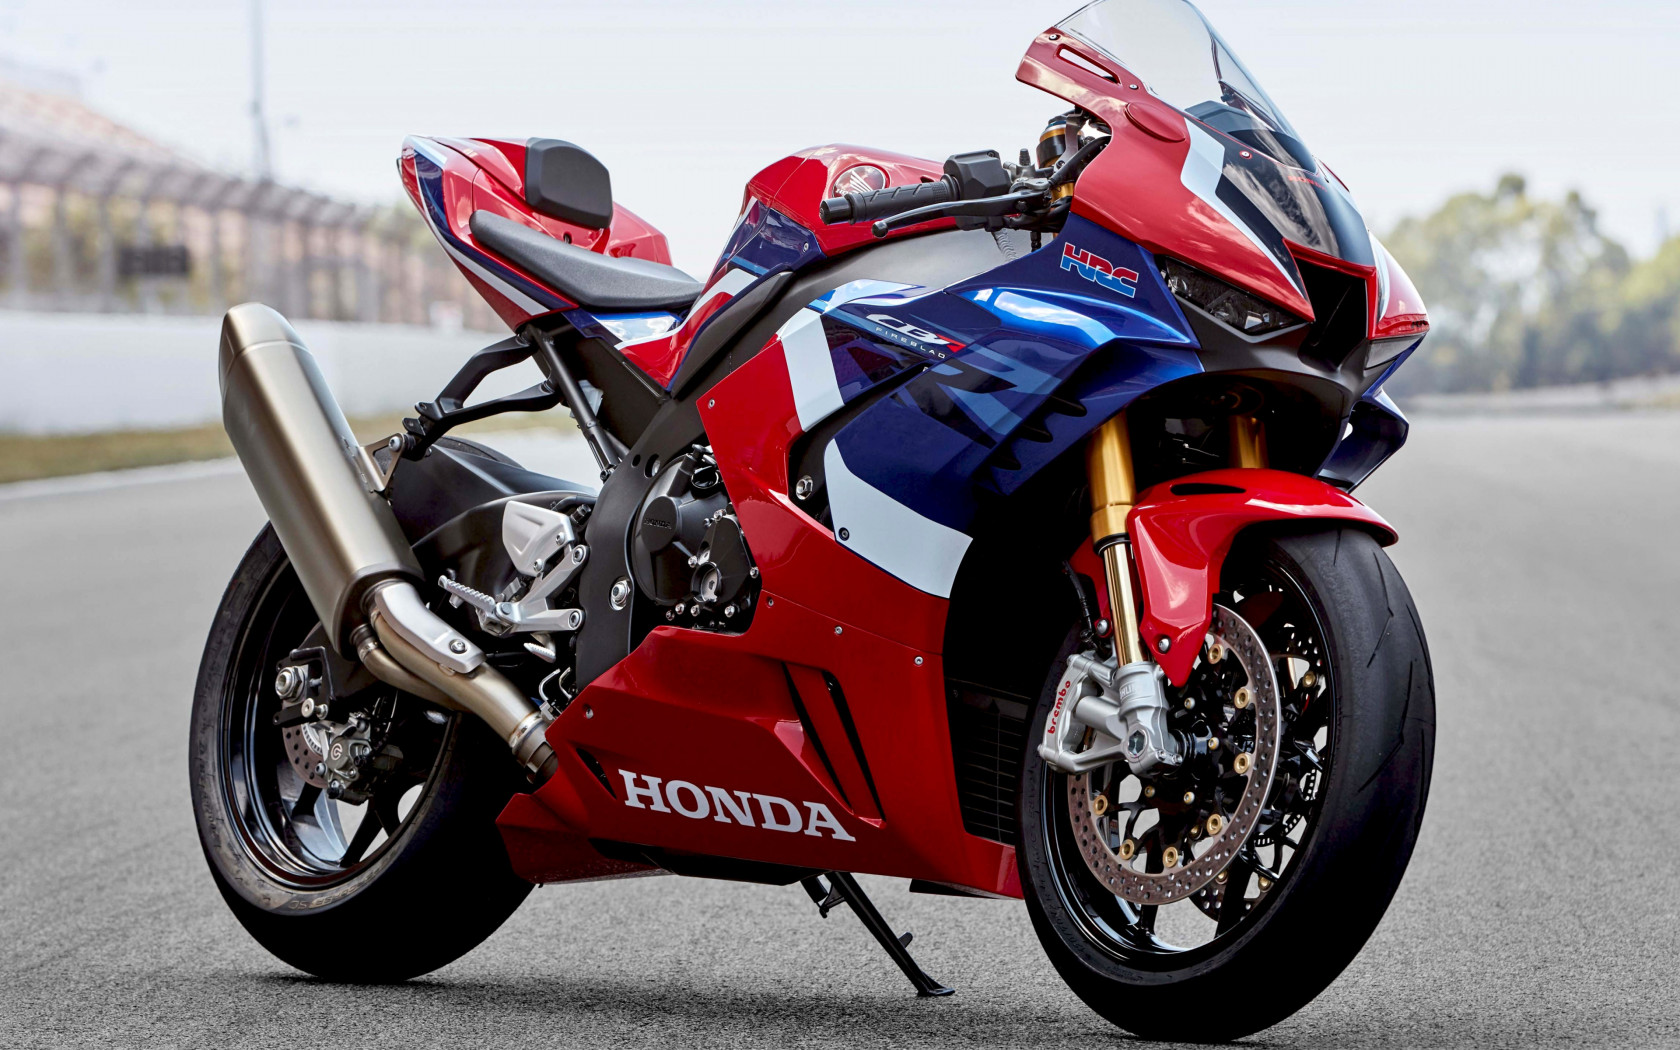 Honda CBR1000RR R SP wallpaper 1680x1050